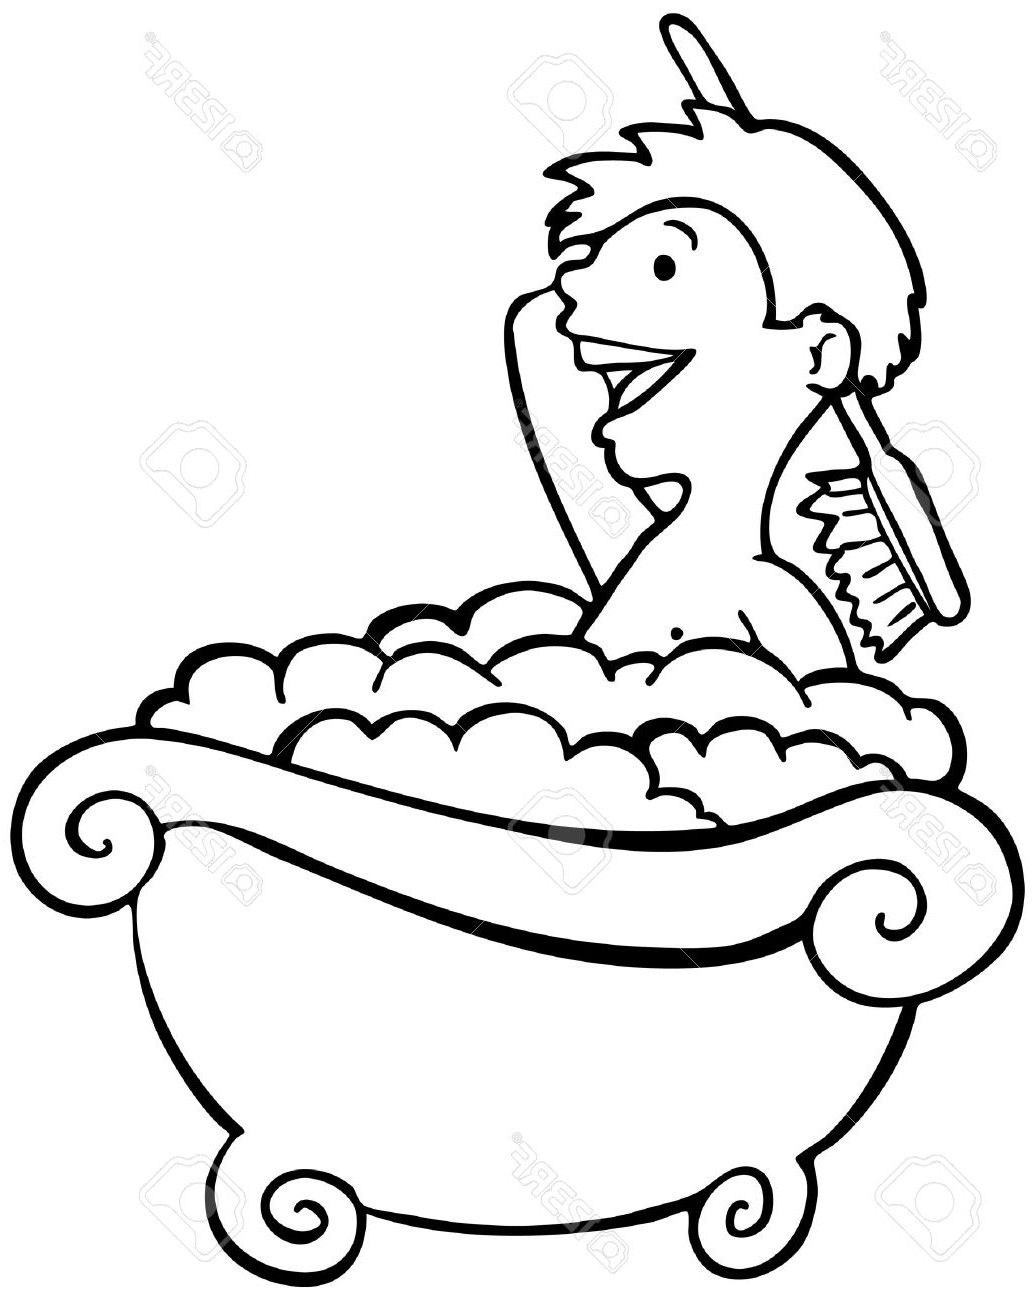 Black and white clipart bath image black and white download Bath clipart black and white 6 » Clipart Portal image black and white download